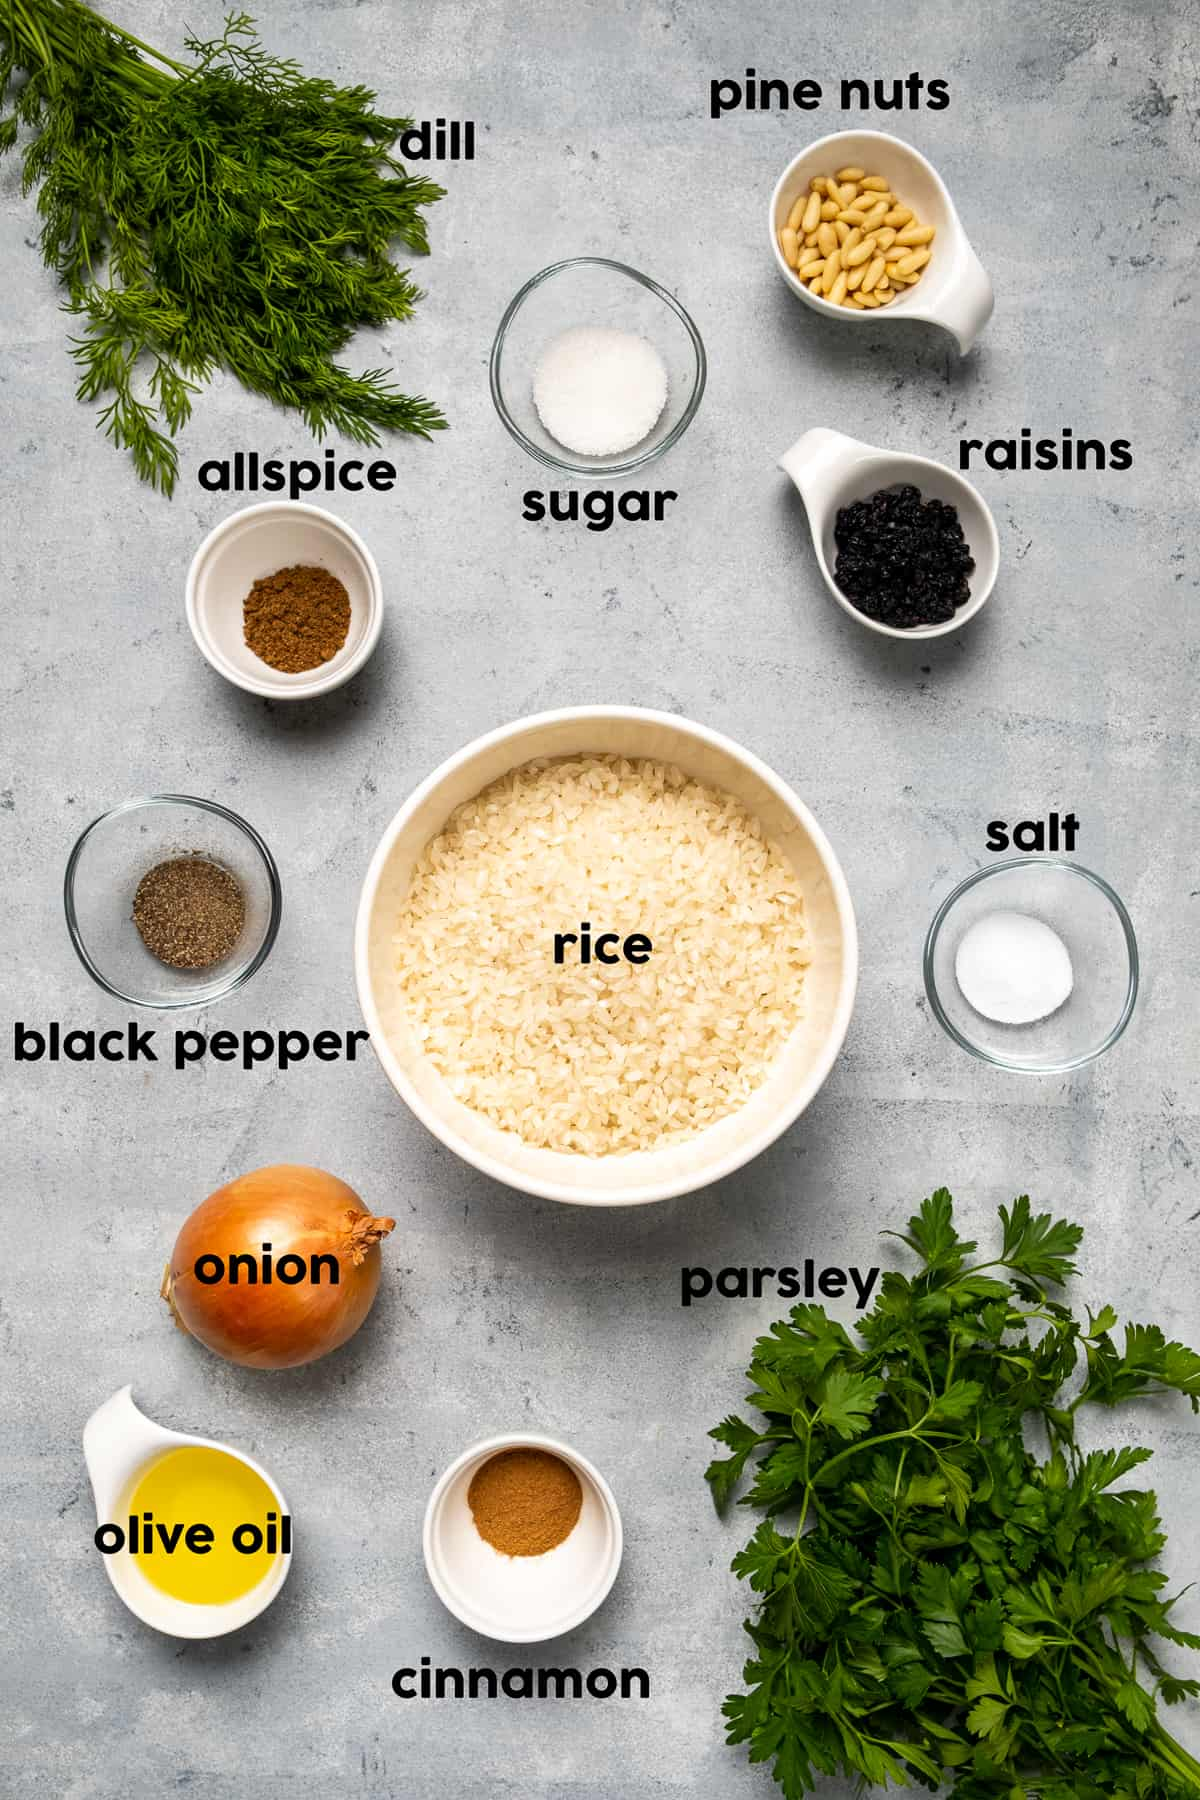 Rice in a large bowl, pine nuts, raisins, dill and parsley, spices, onion and olive oil on a grey background.